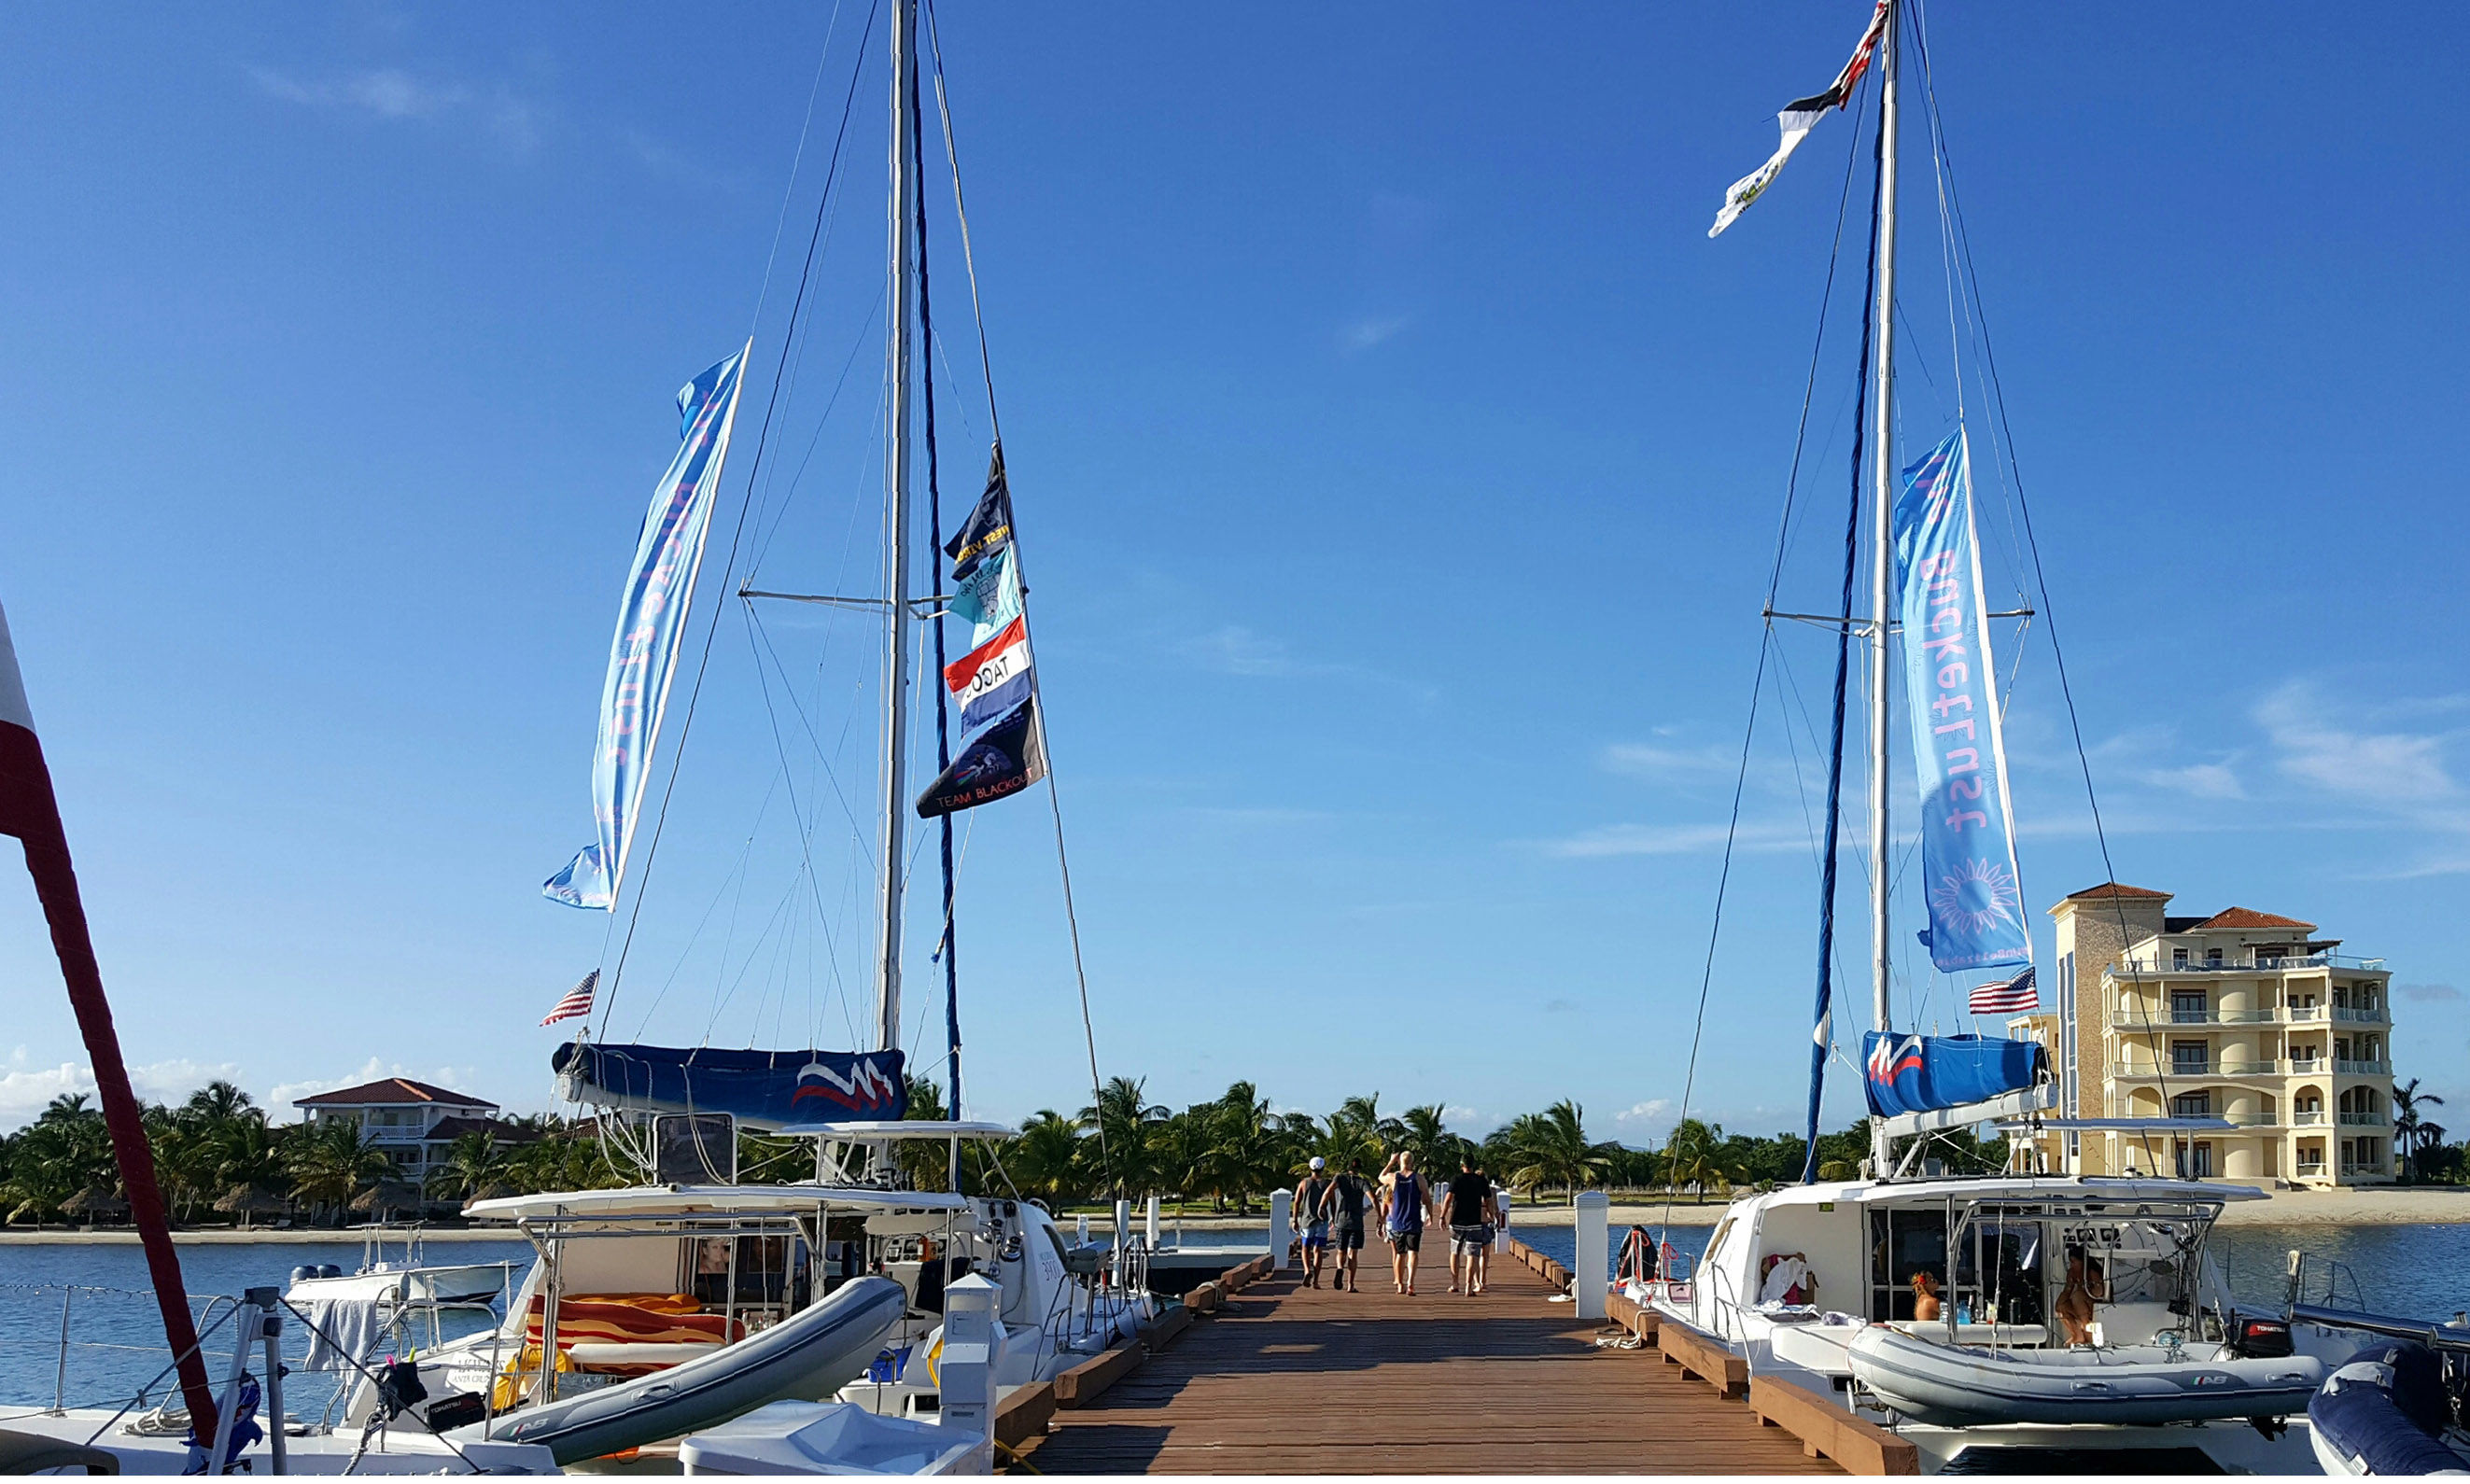 The Placencia Marina in Placencia, Stann Creek District, Belize ...